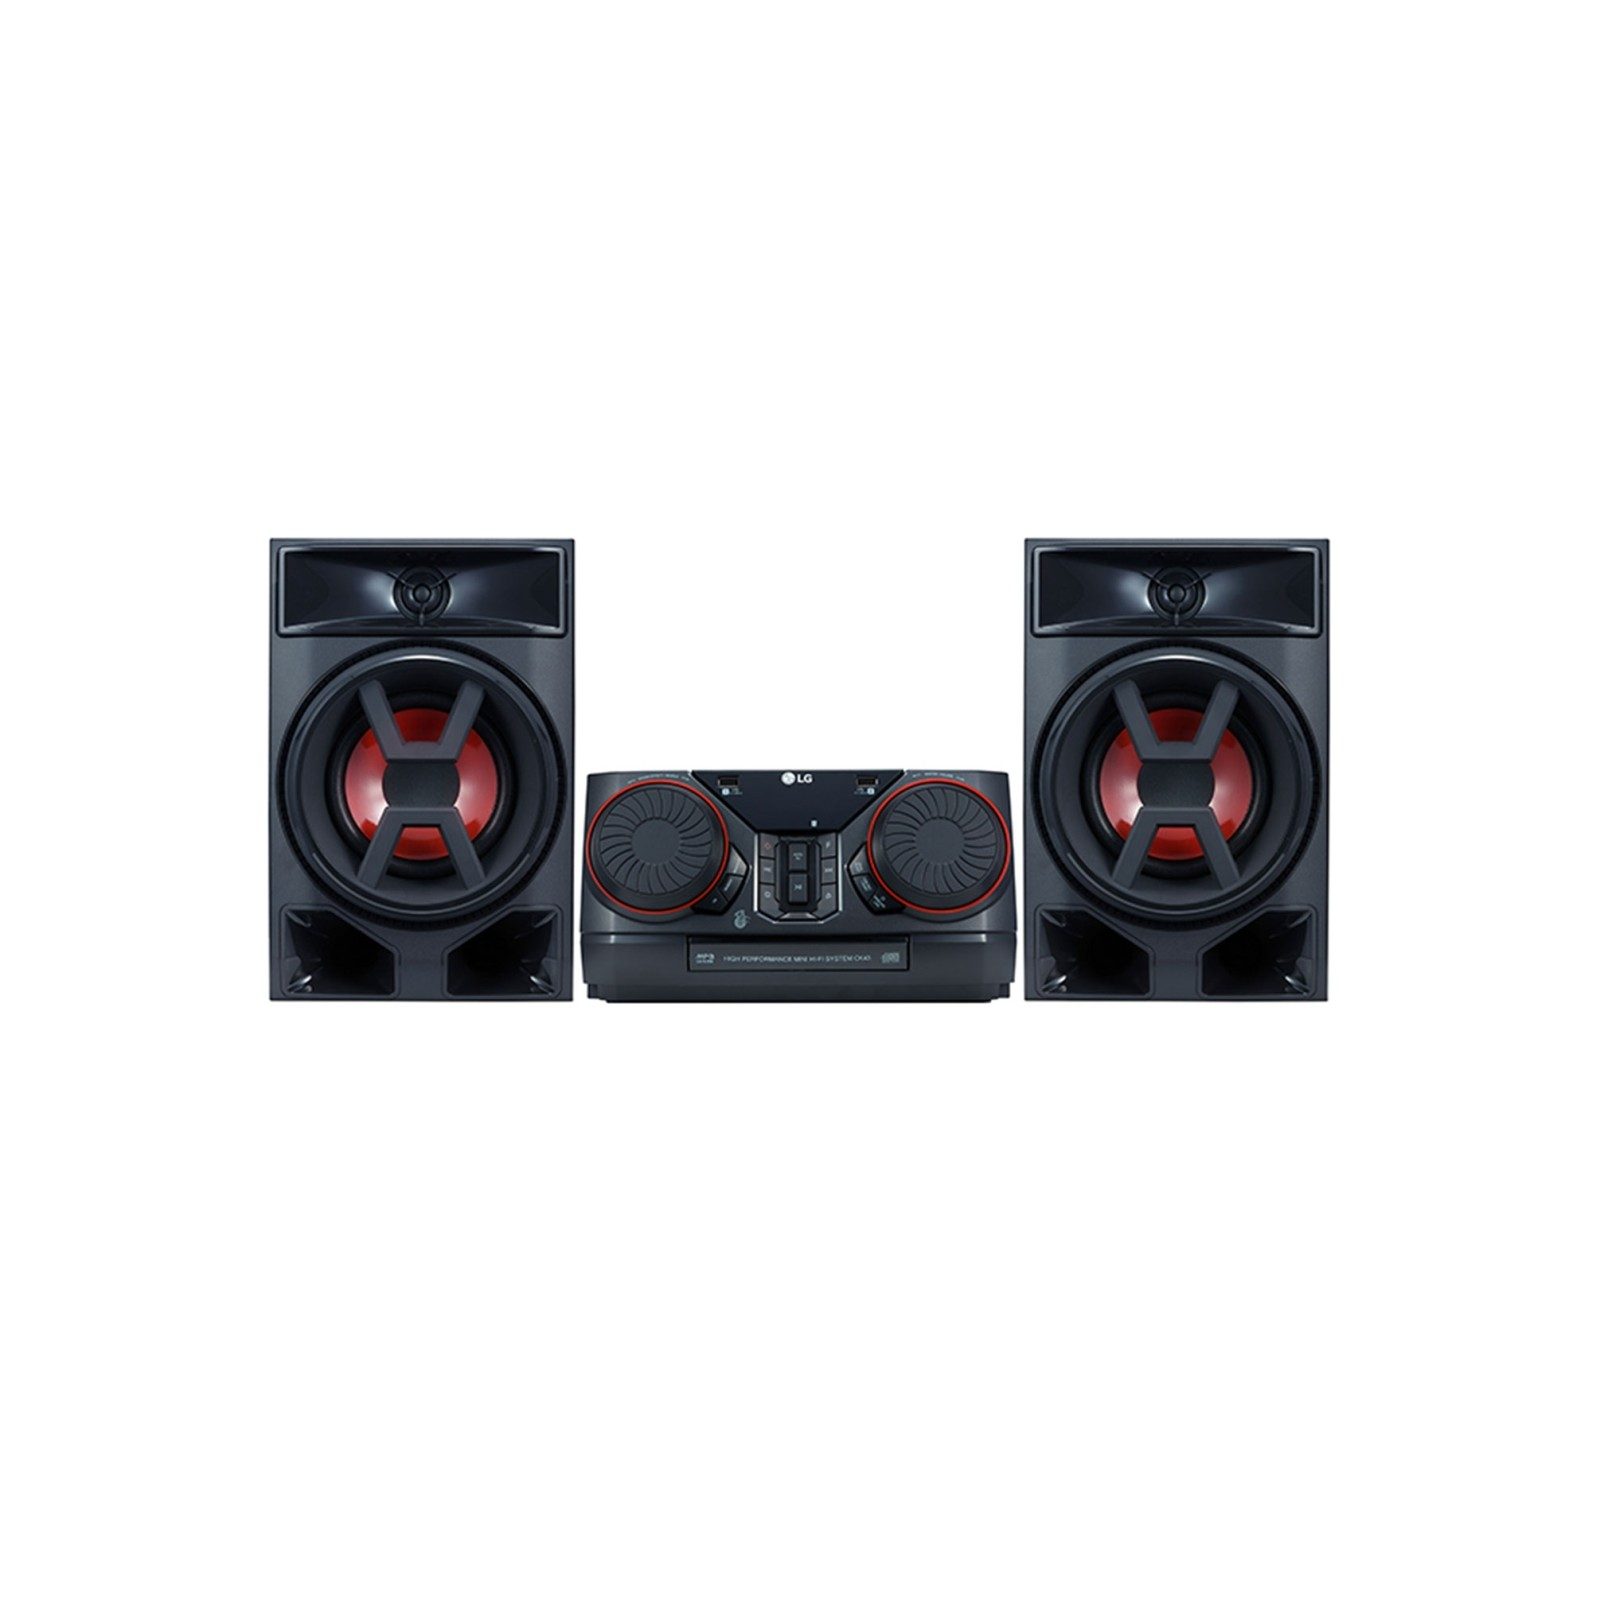 Mini System LG Xboom 220W CD USB - CK43